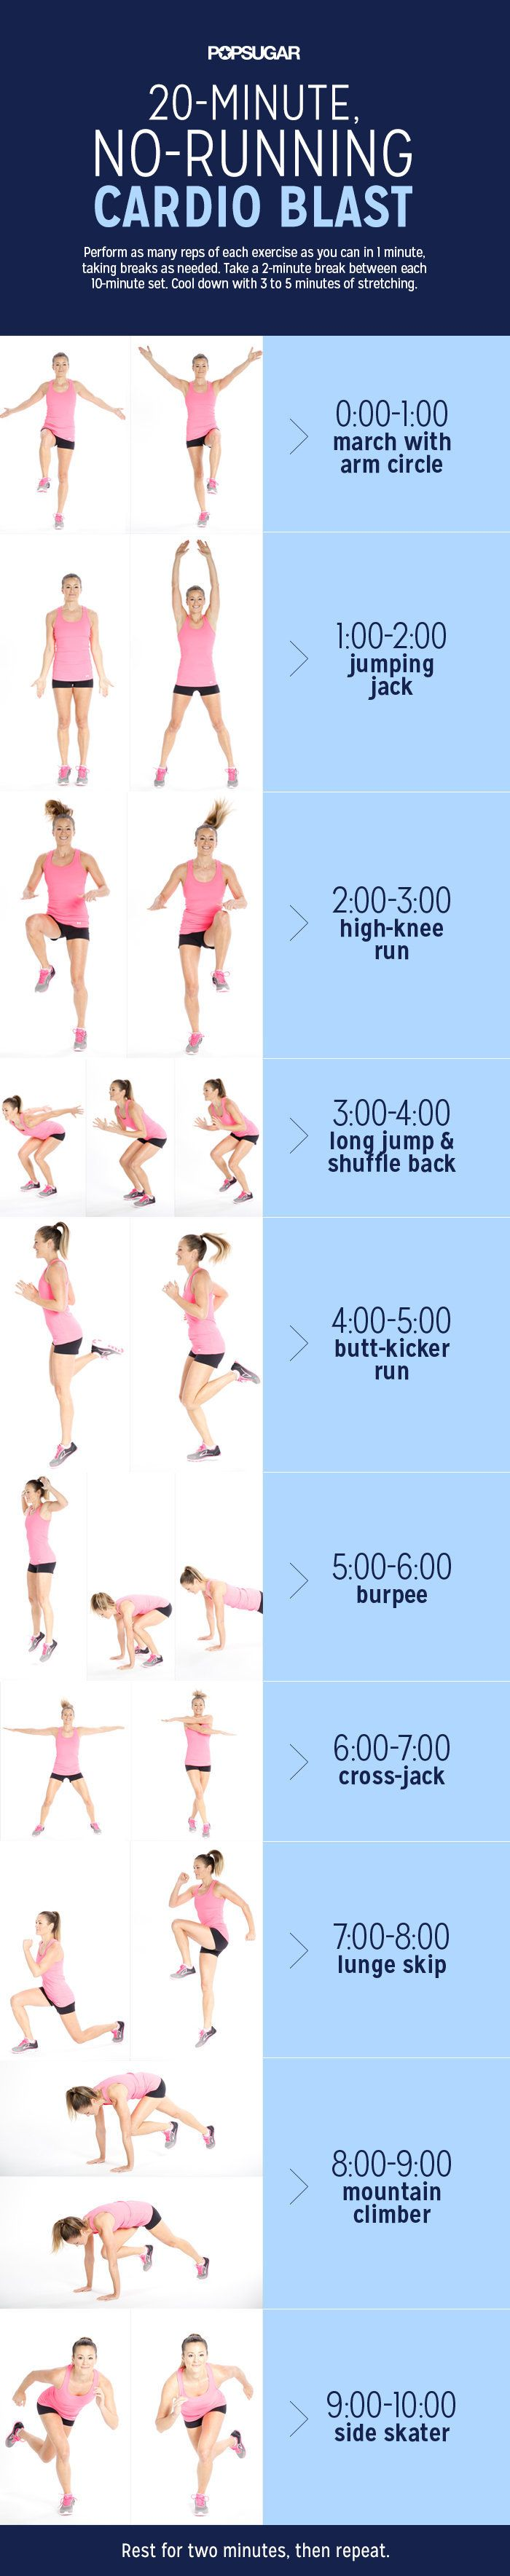 25 best ideas about living room workout on pinterest no for Living room exercises